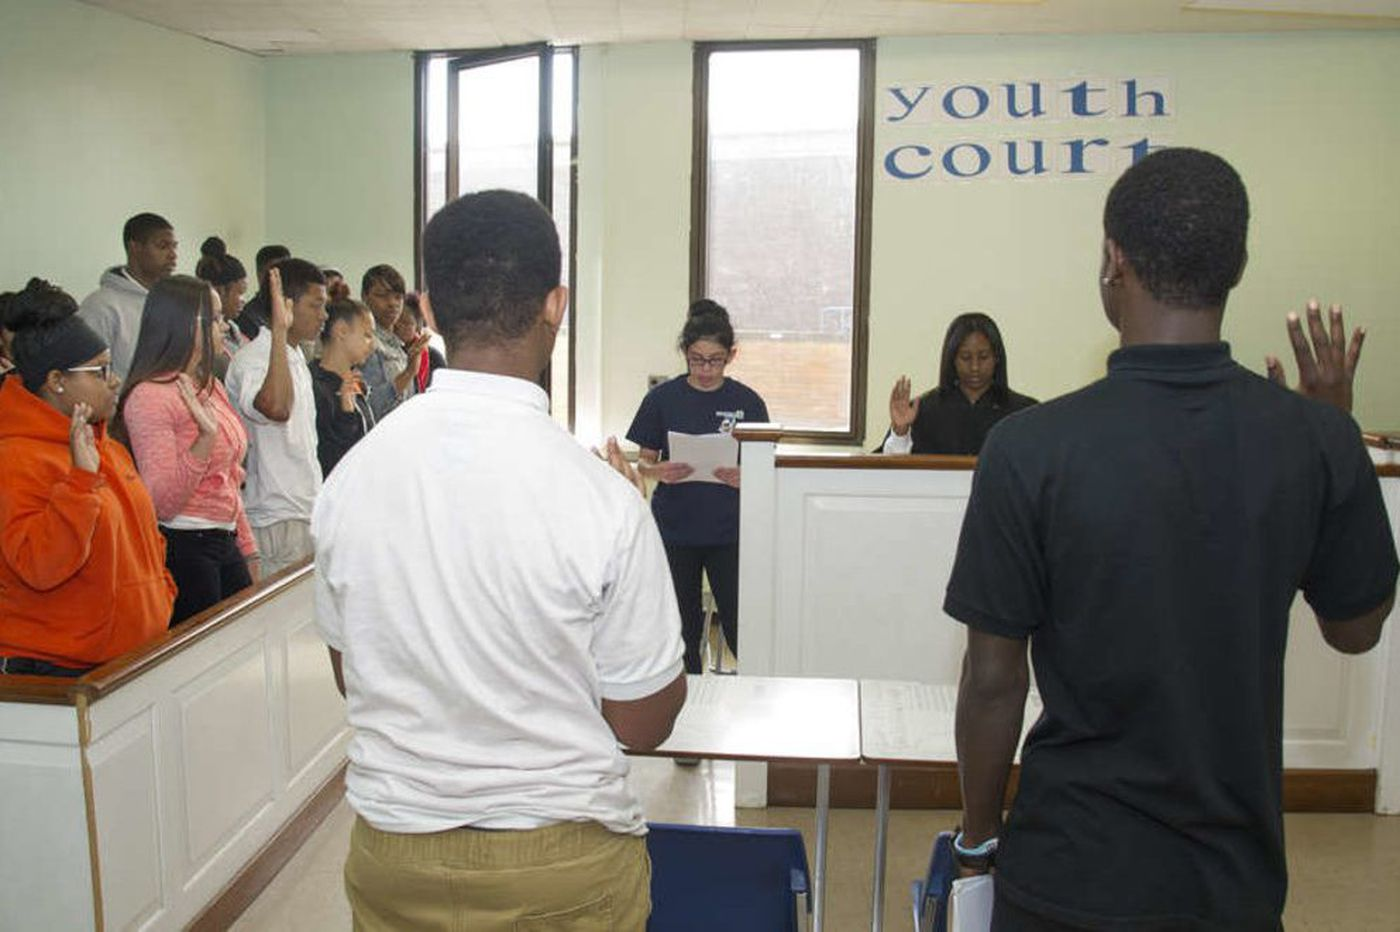 Philly, and other Pa. school districts, can learn from Chester City's radically transformative youth courts | Opinion